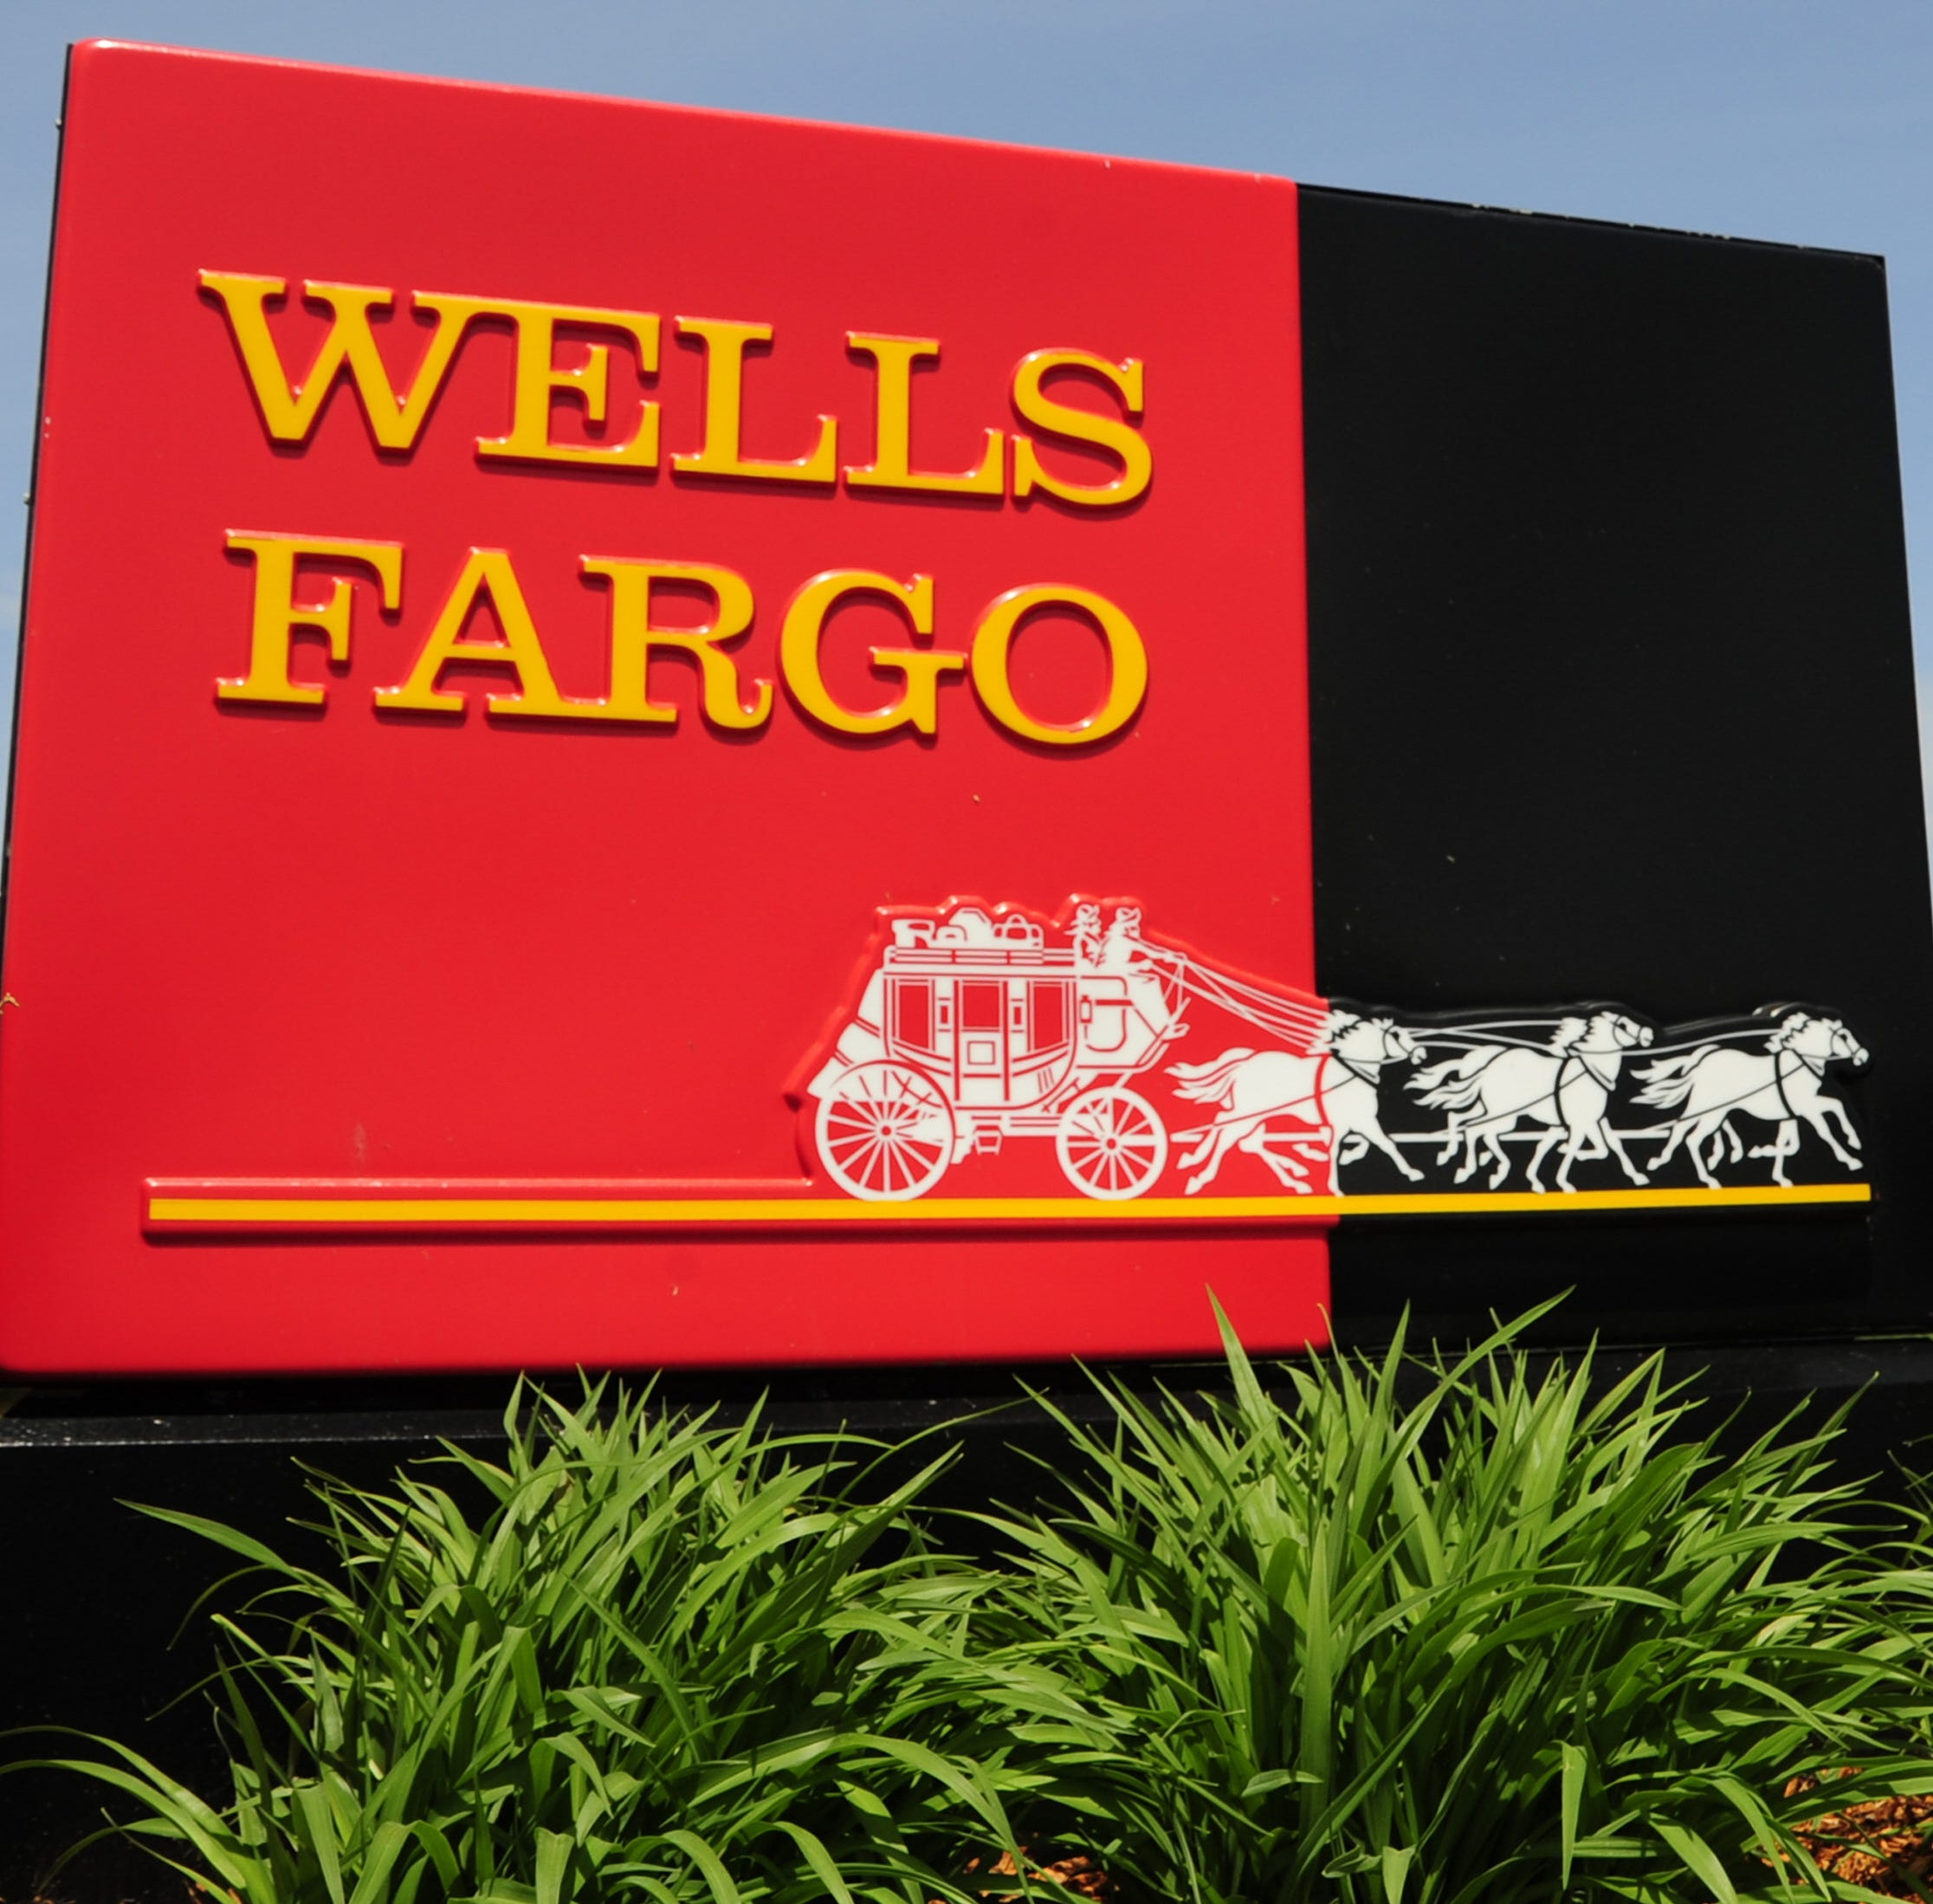 New Mexico sues Wells Fargo over unauthorized accounts